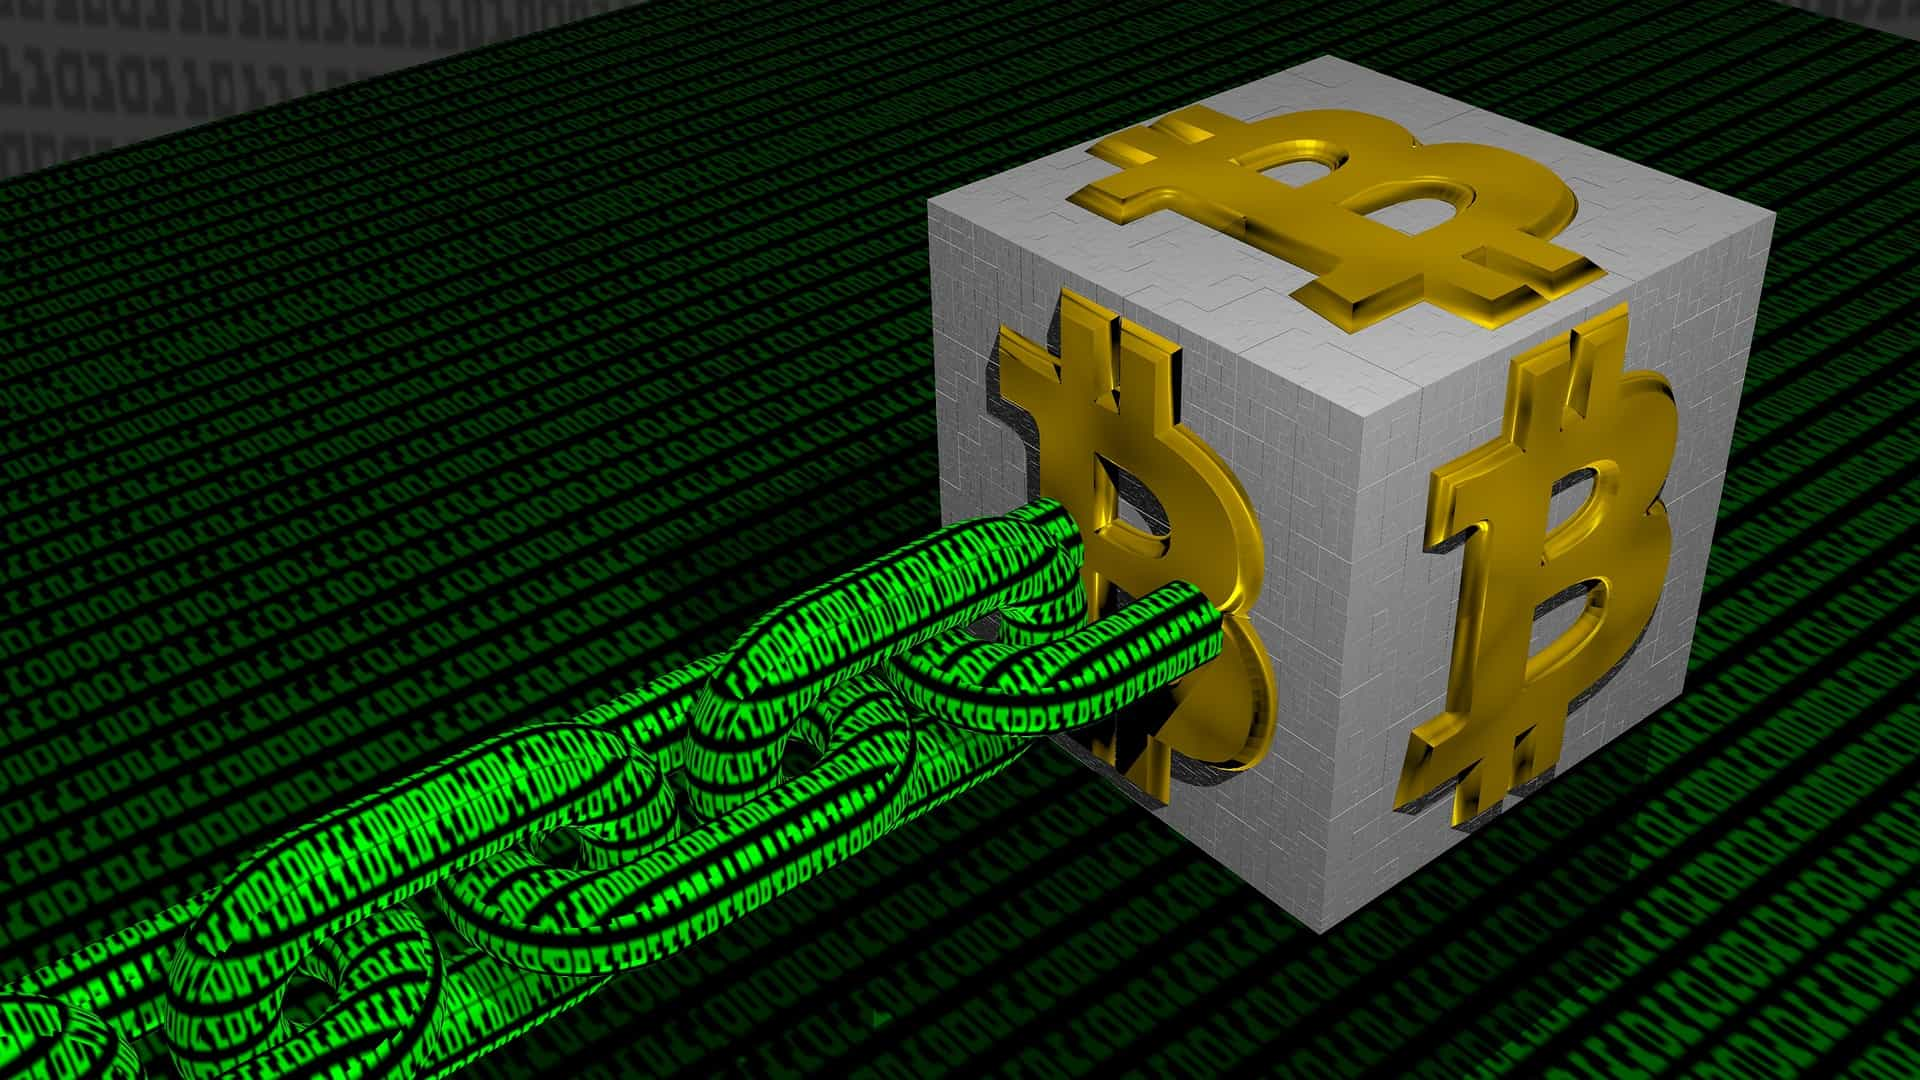 Bitcoins are digital currency stored in digital vaults